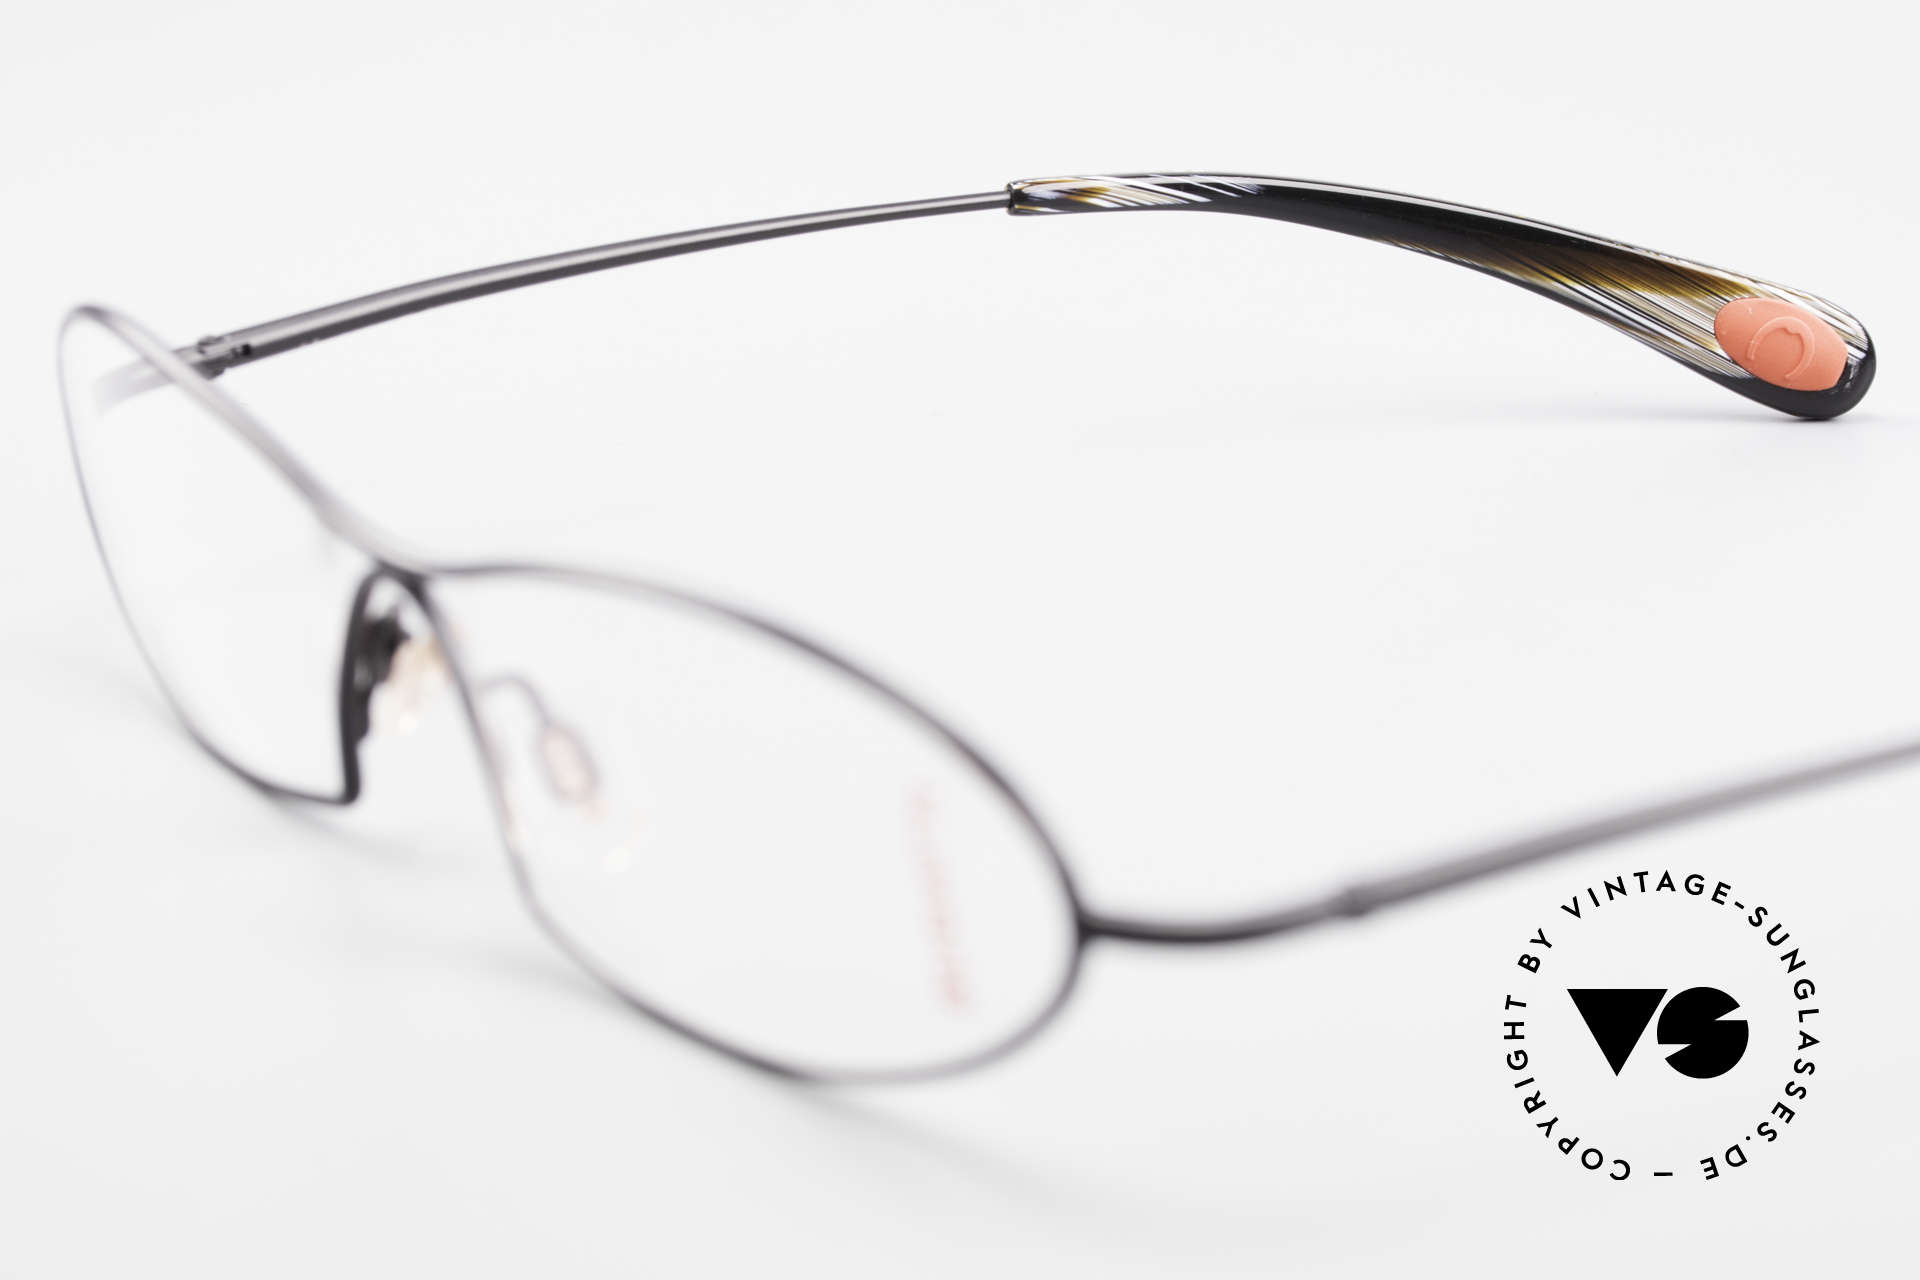 Bugatti 343 Odotype Vintage Men's Designer Frame, frame is made for optical lenses / sun lenses, Made for Men